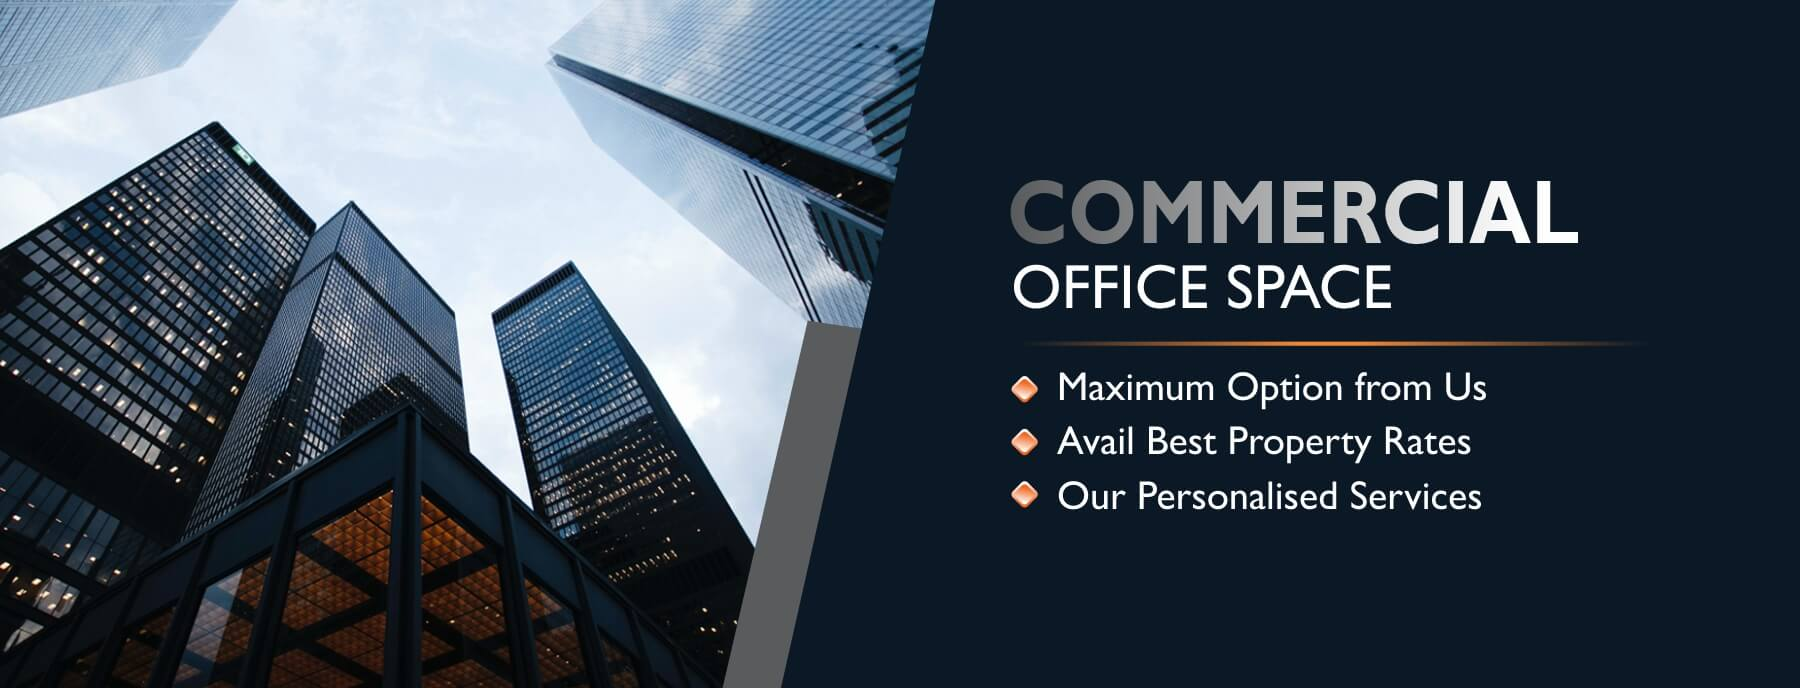 Fully Furnished Office Space For Rent or Sale Mumbai | Coworking Space